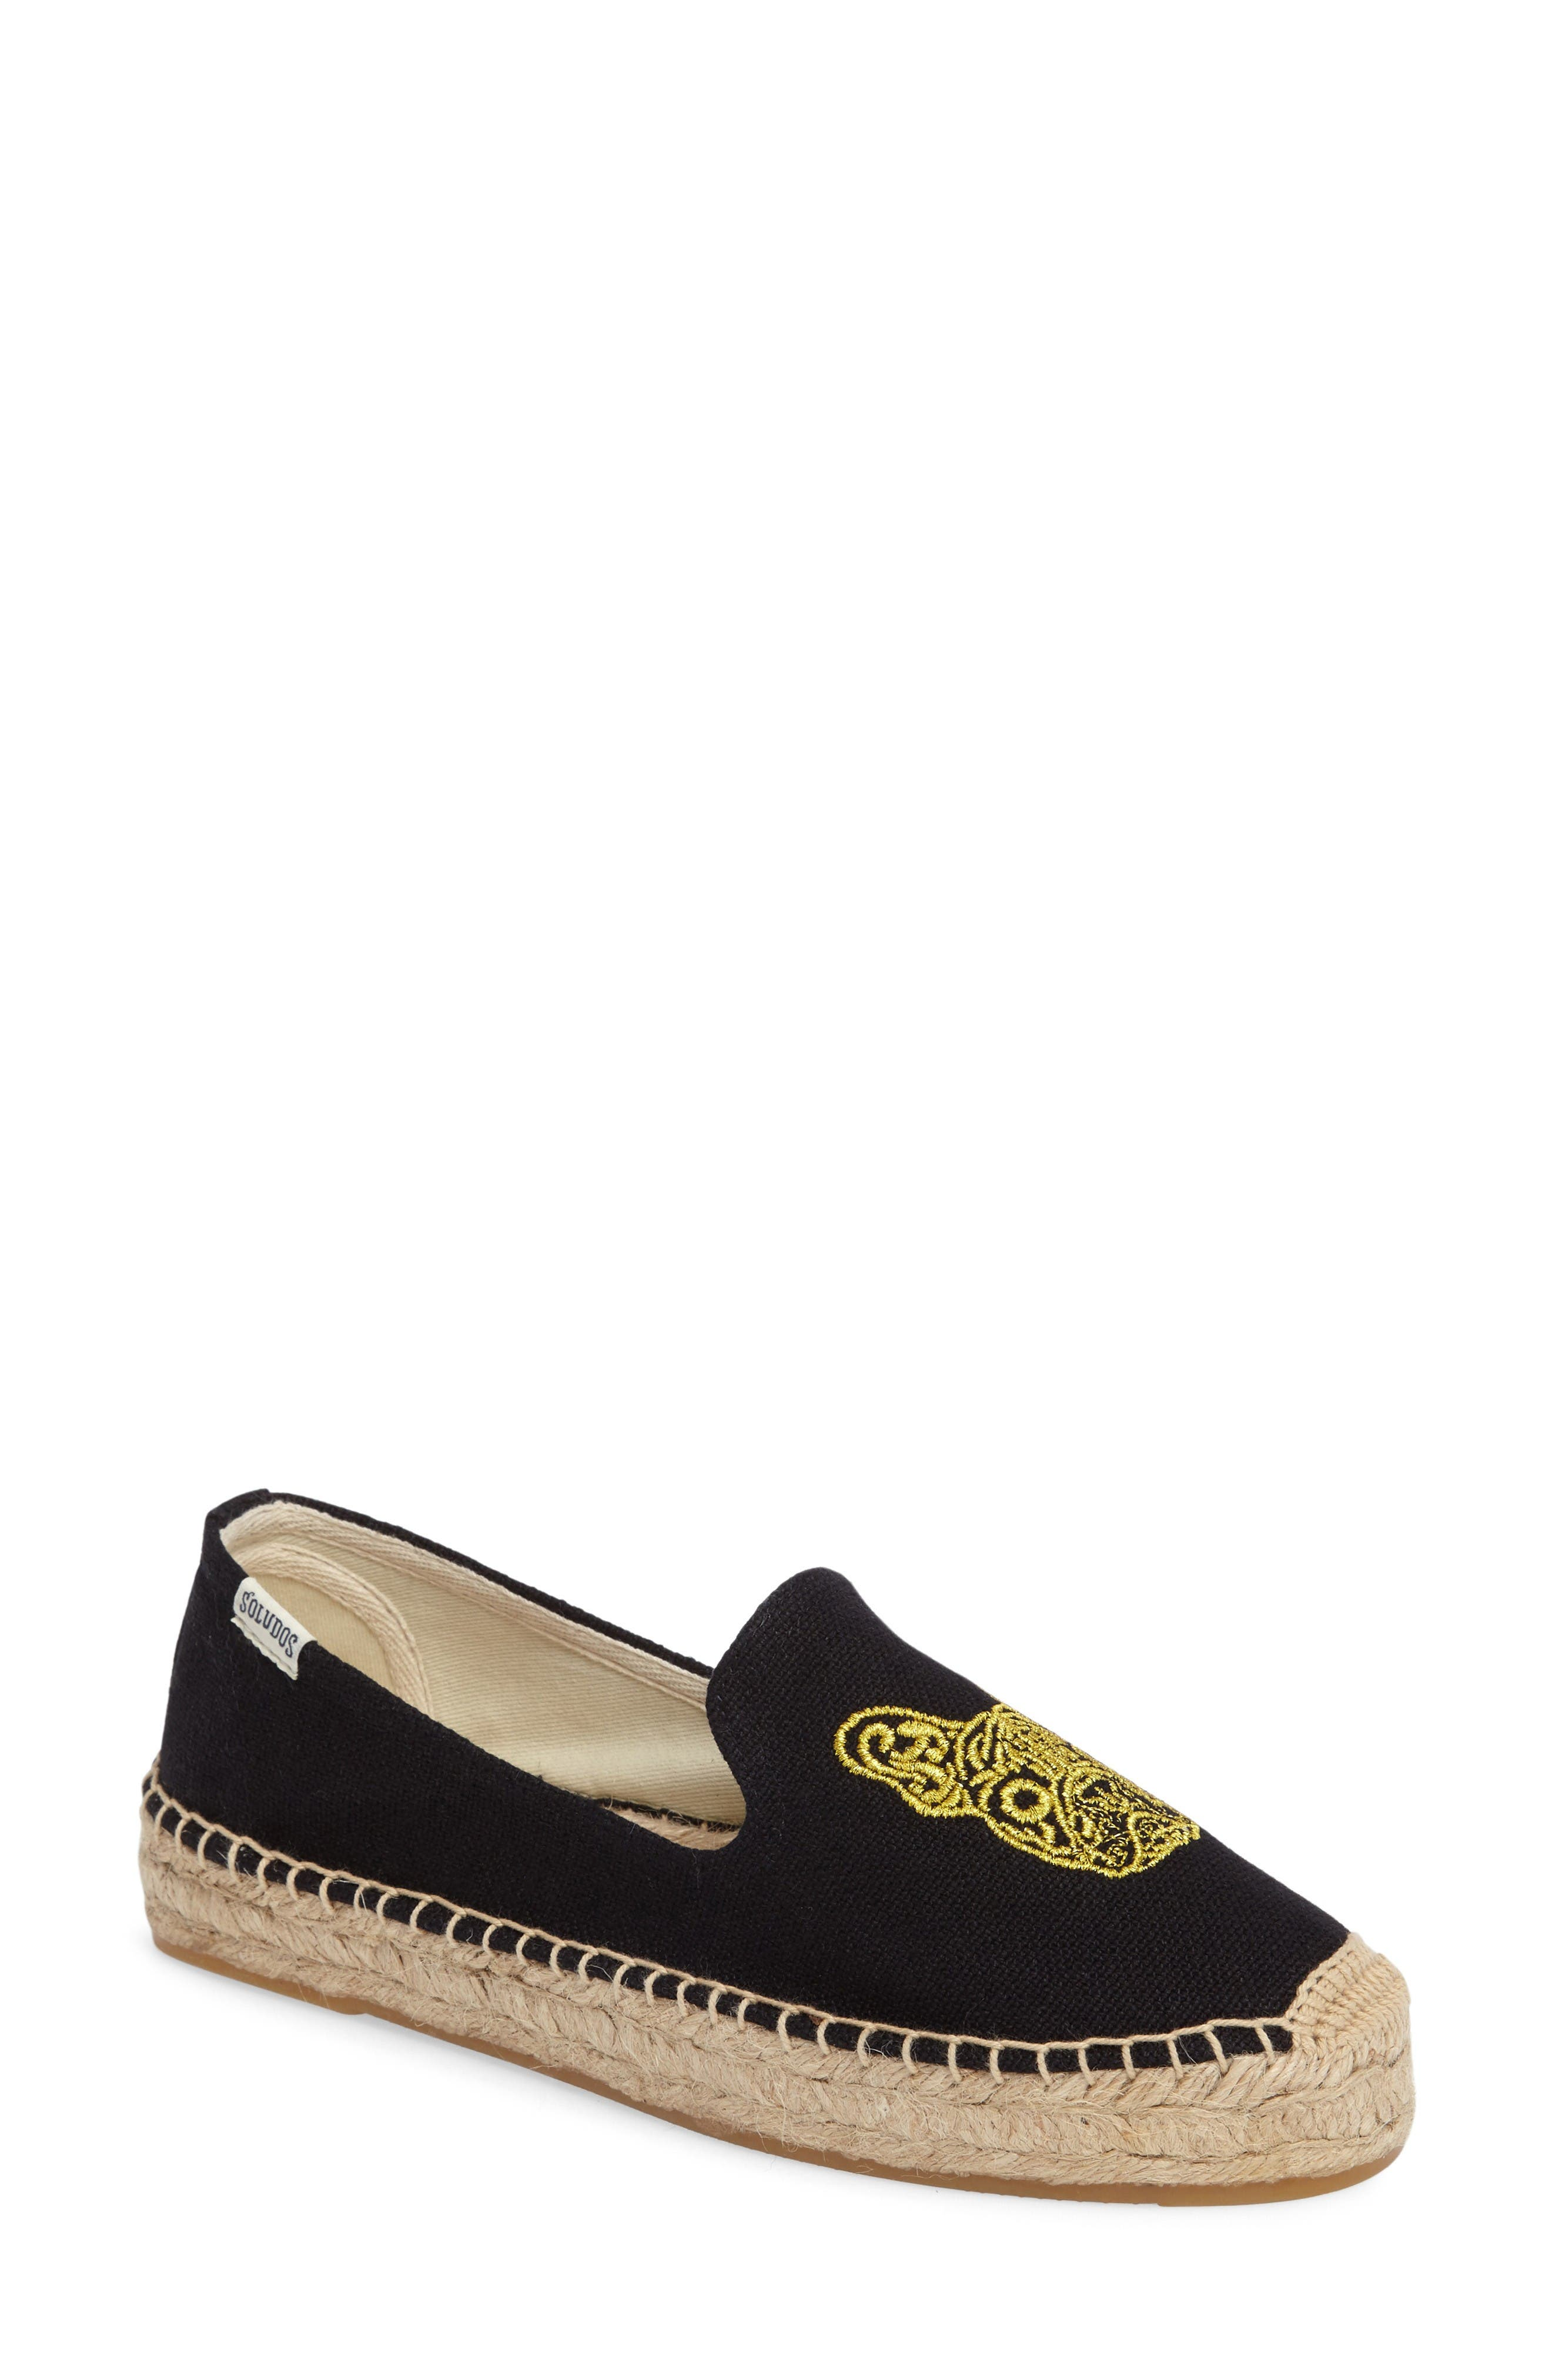 Alternate Image 1 Selected - Soludos Frenchie Espadrille Loafer (Women)